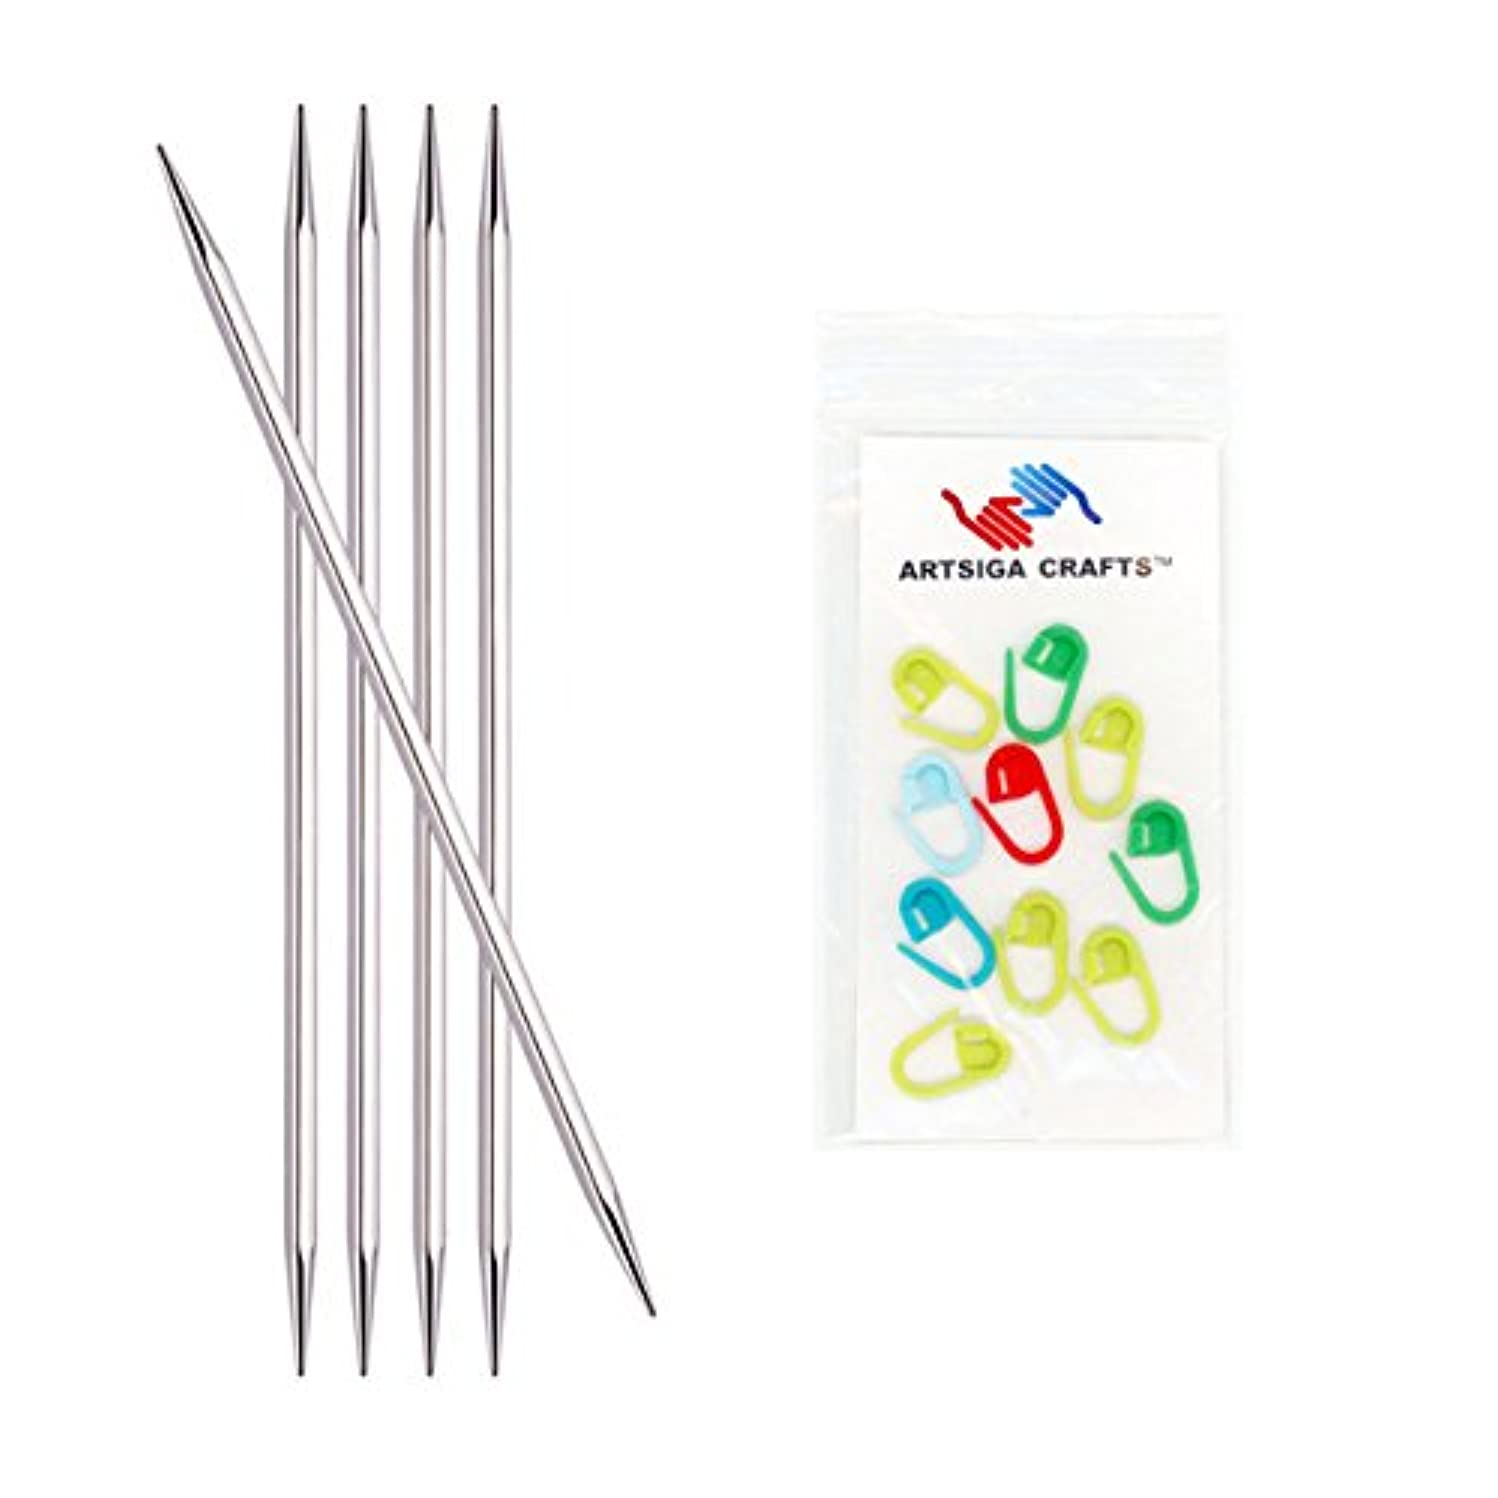 Knitter's Pride Nova Cubics Platina Double Point 5-inch (12.5cm) Knitting Needles (Set of 5) Size 1 (2.25mm) Bundle with 10 Artsiga Crafts Stitch Markers 320102